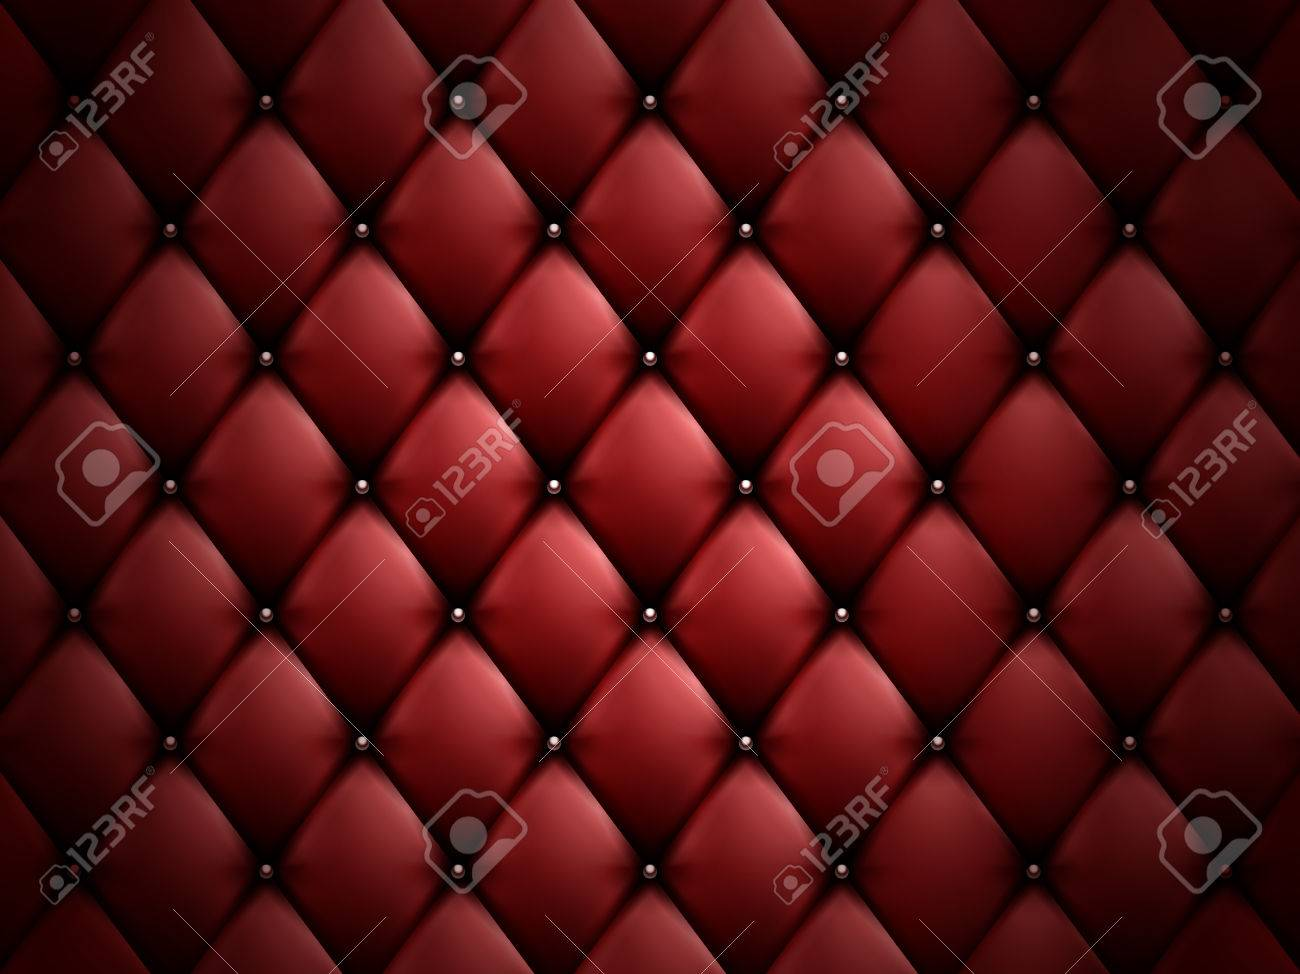 Dark Red Sofa Background Able For Design Uses 3d Illustration